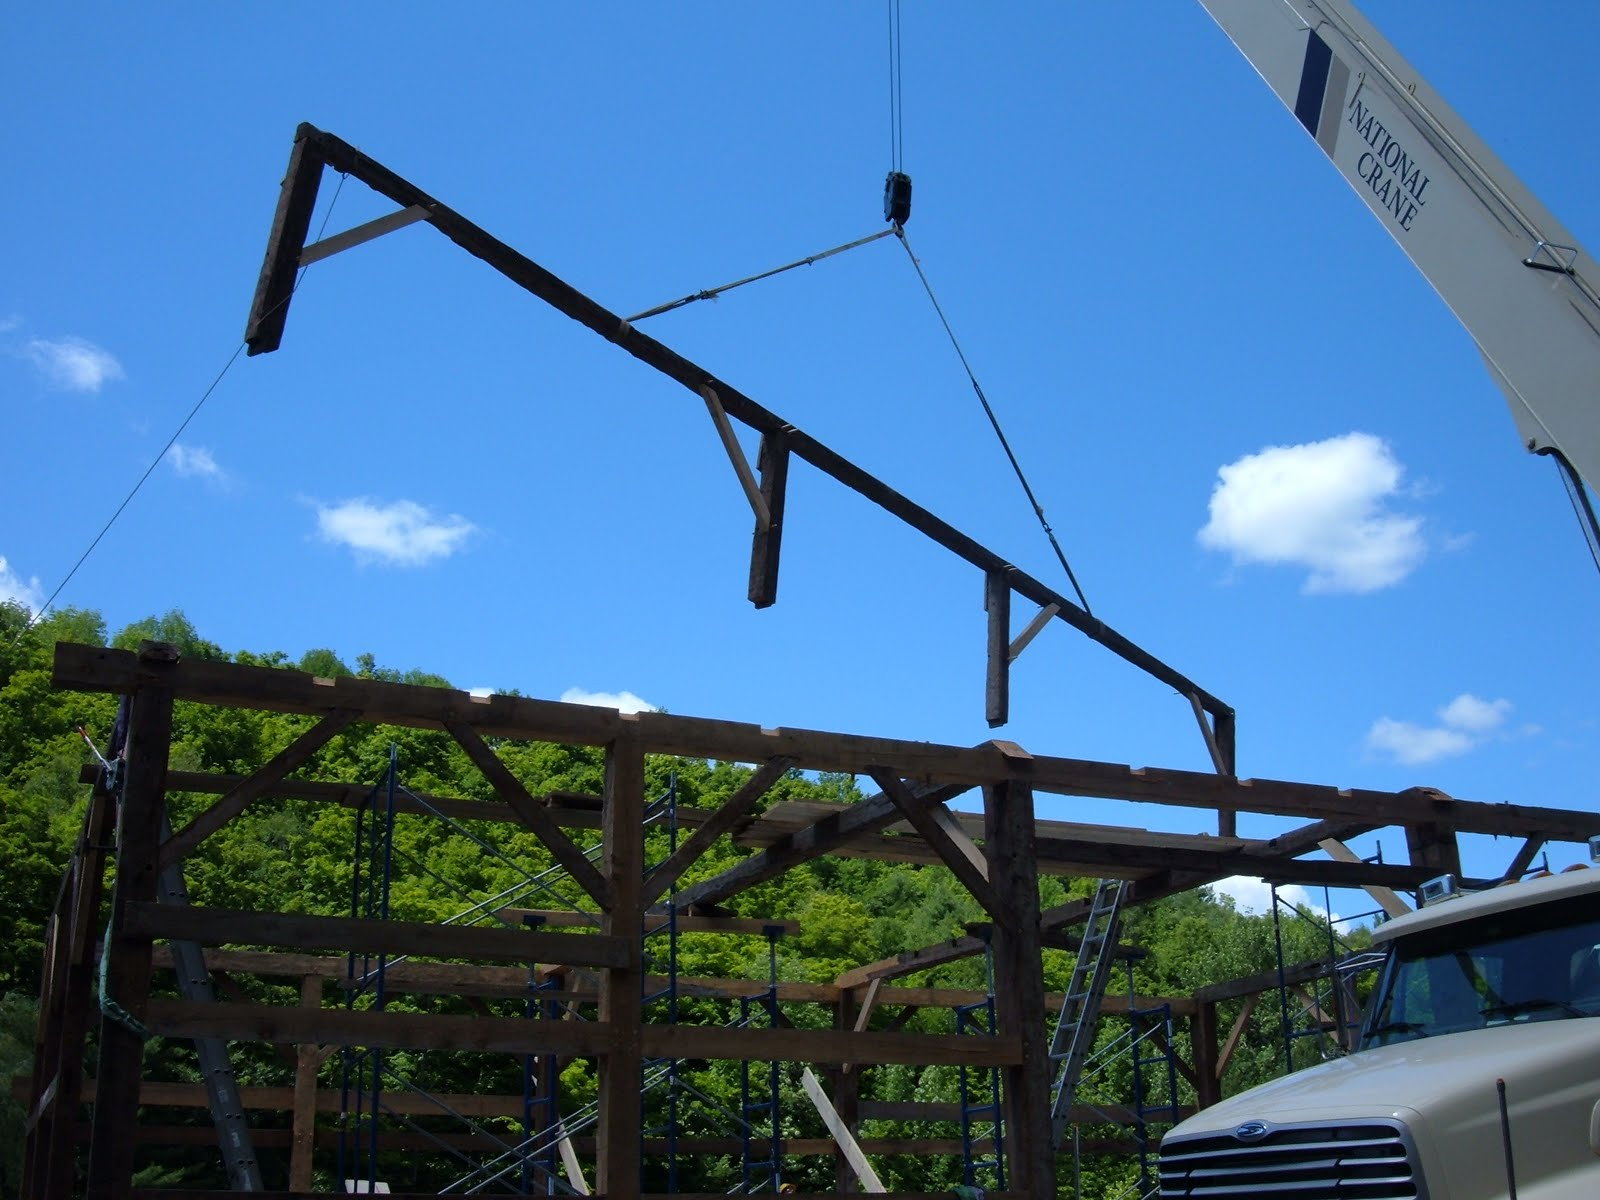 With the eave walls up and the ties in place, the first of the fifty foot long purlin plates is flown into place with its posts and braces.